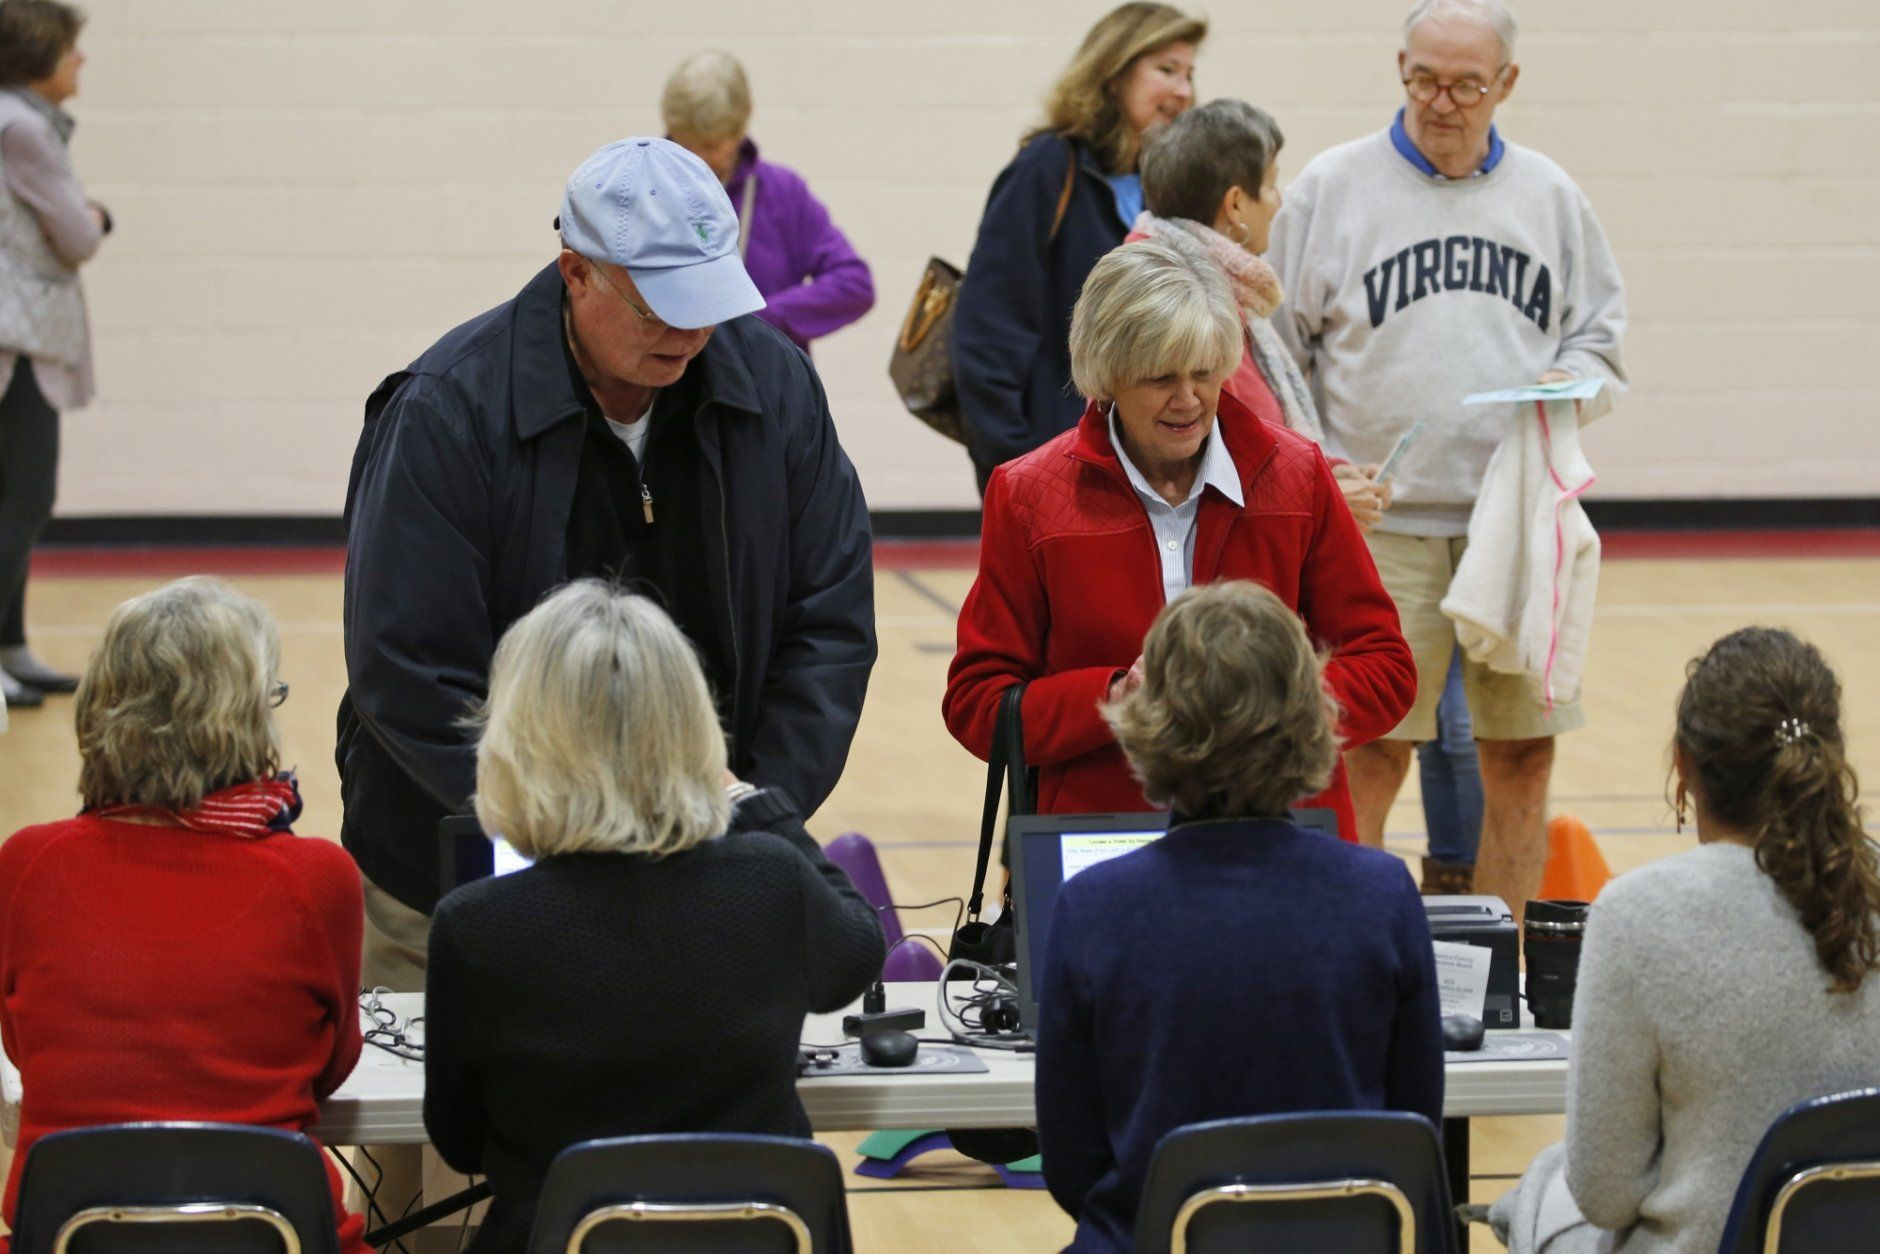 Voters line up to get ballots at a polling station in Richmond, Va., Tuesday, Nov. 5, 2019. All seats in the Virginia House of Delegates and State senate are up for election. (AP Photo/Steve Helber)